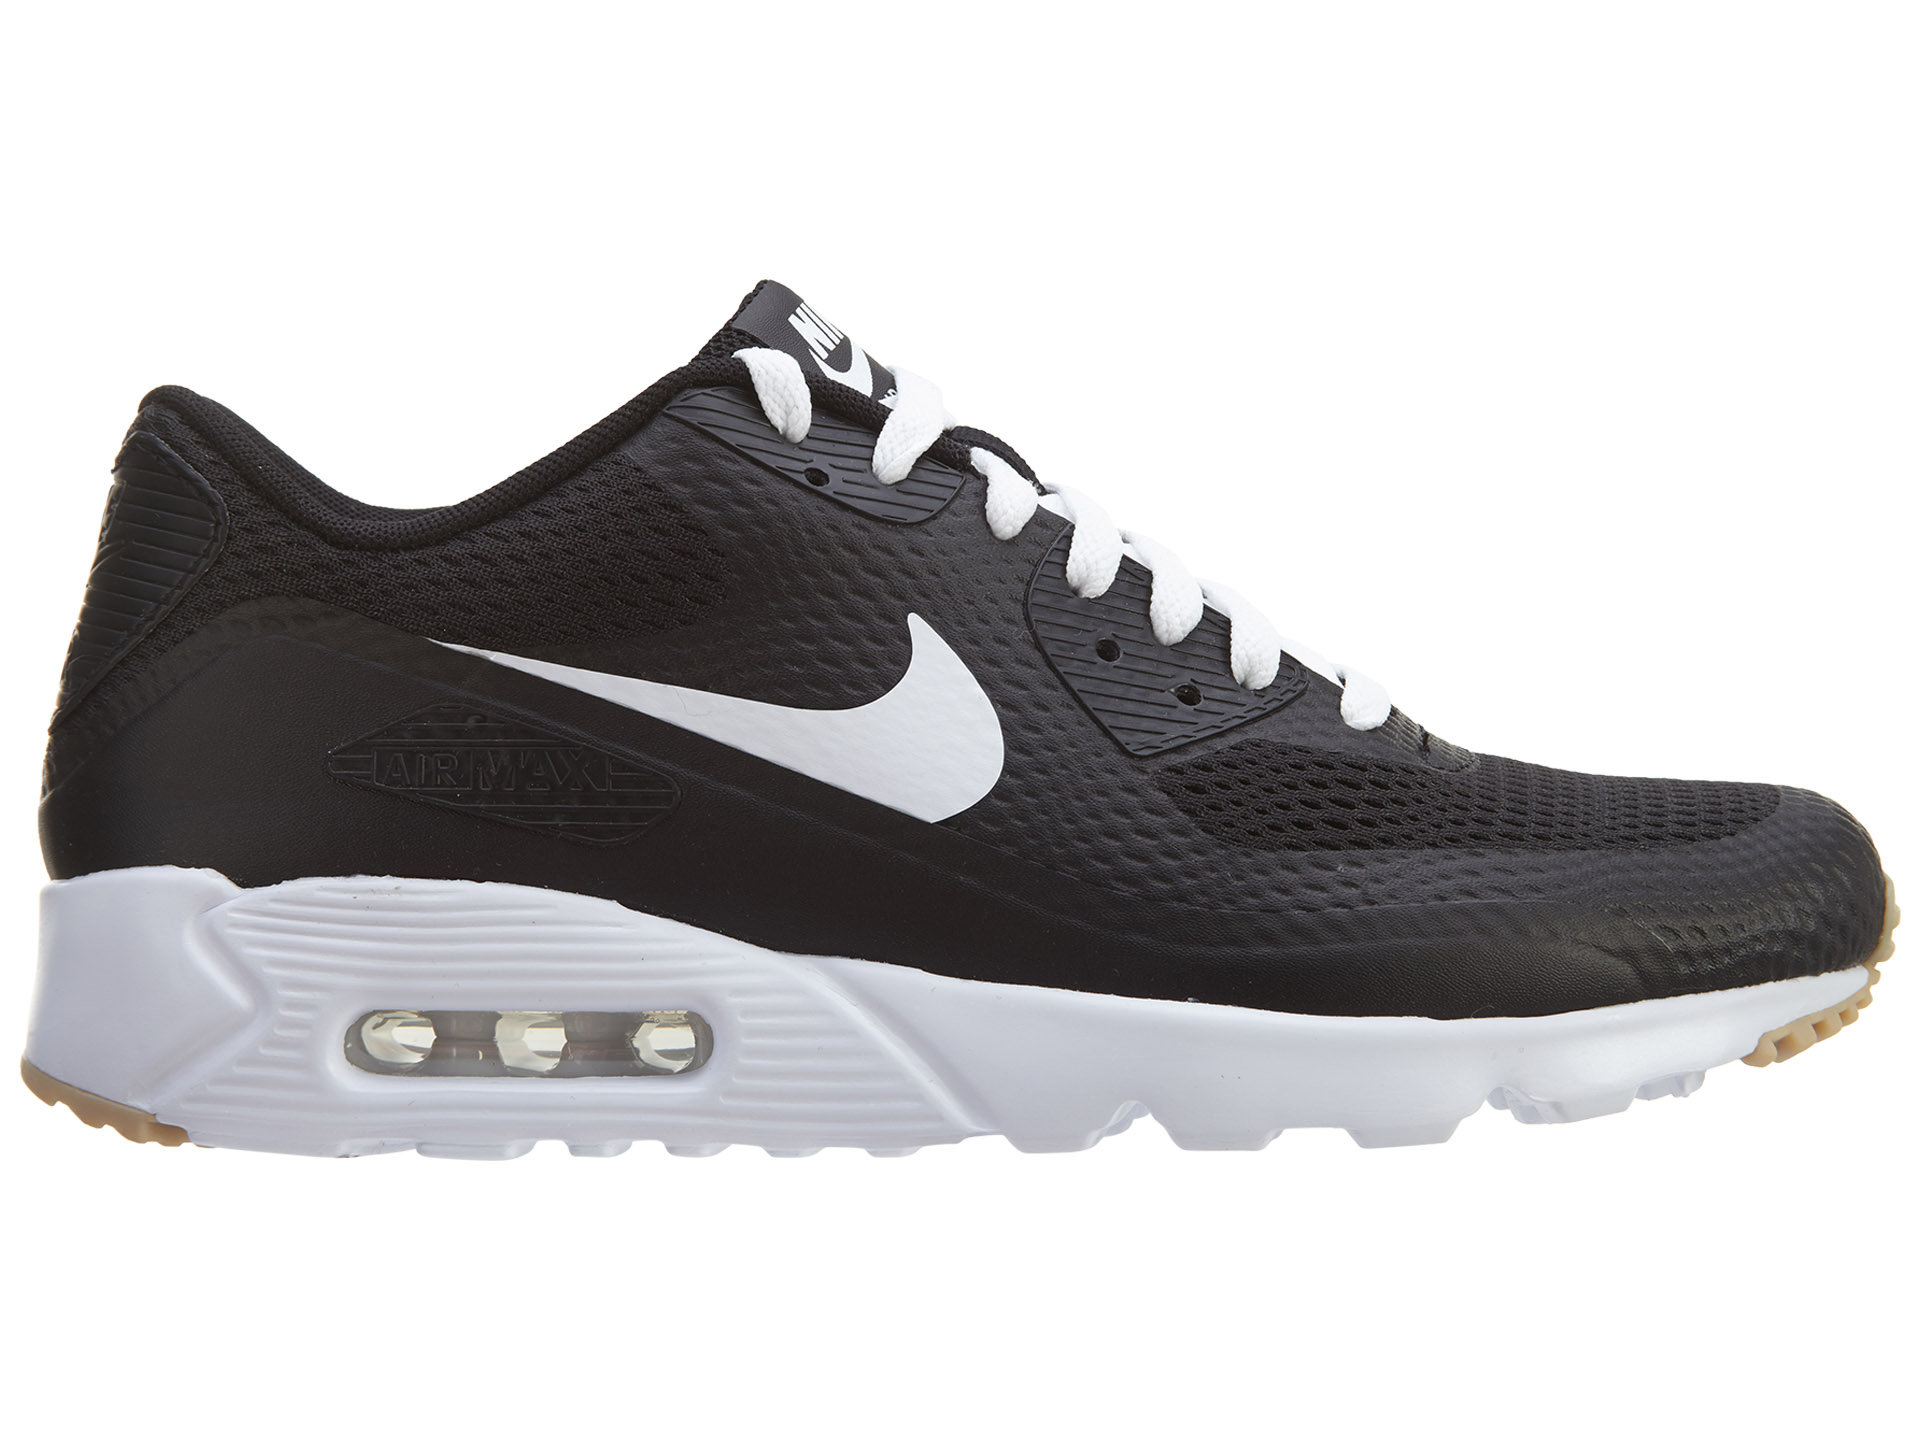 Details about Nike Air Max 90 Ultra Essential 819474 100 shoes